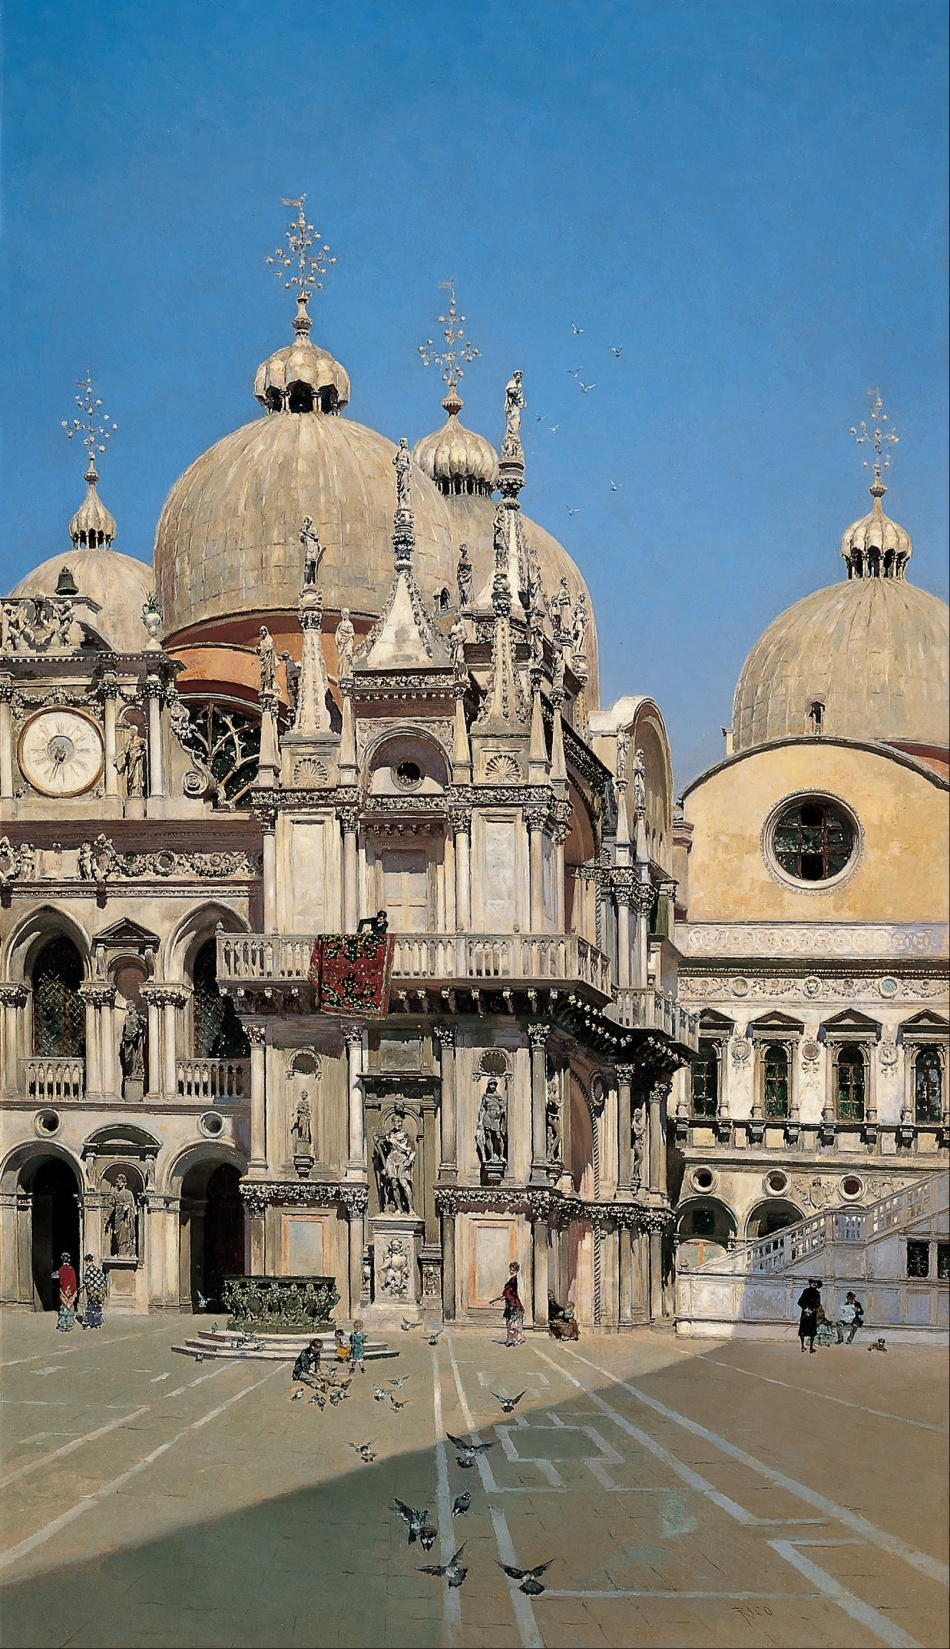 Martín_Rico_y_Ortega_-_Courtyard_of_the_Palace_of_the_Dux_of_Venice_-_Google_Art_Project